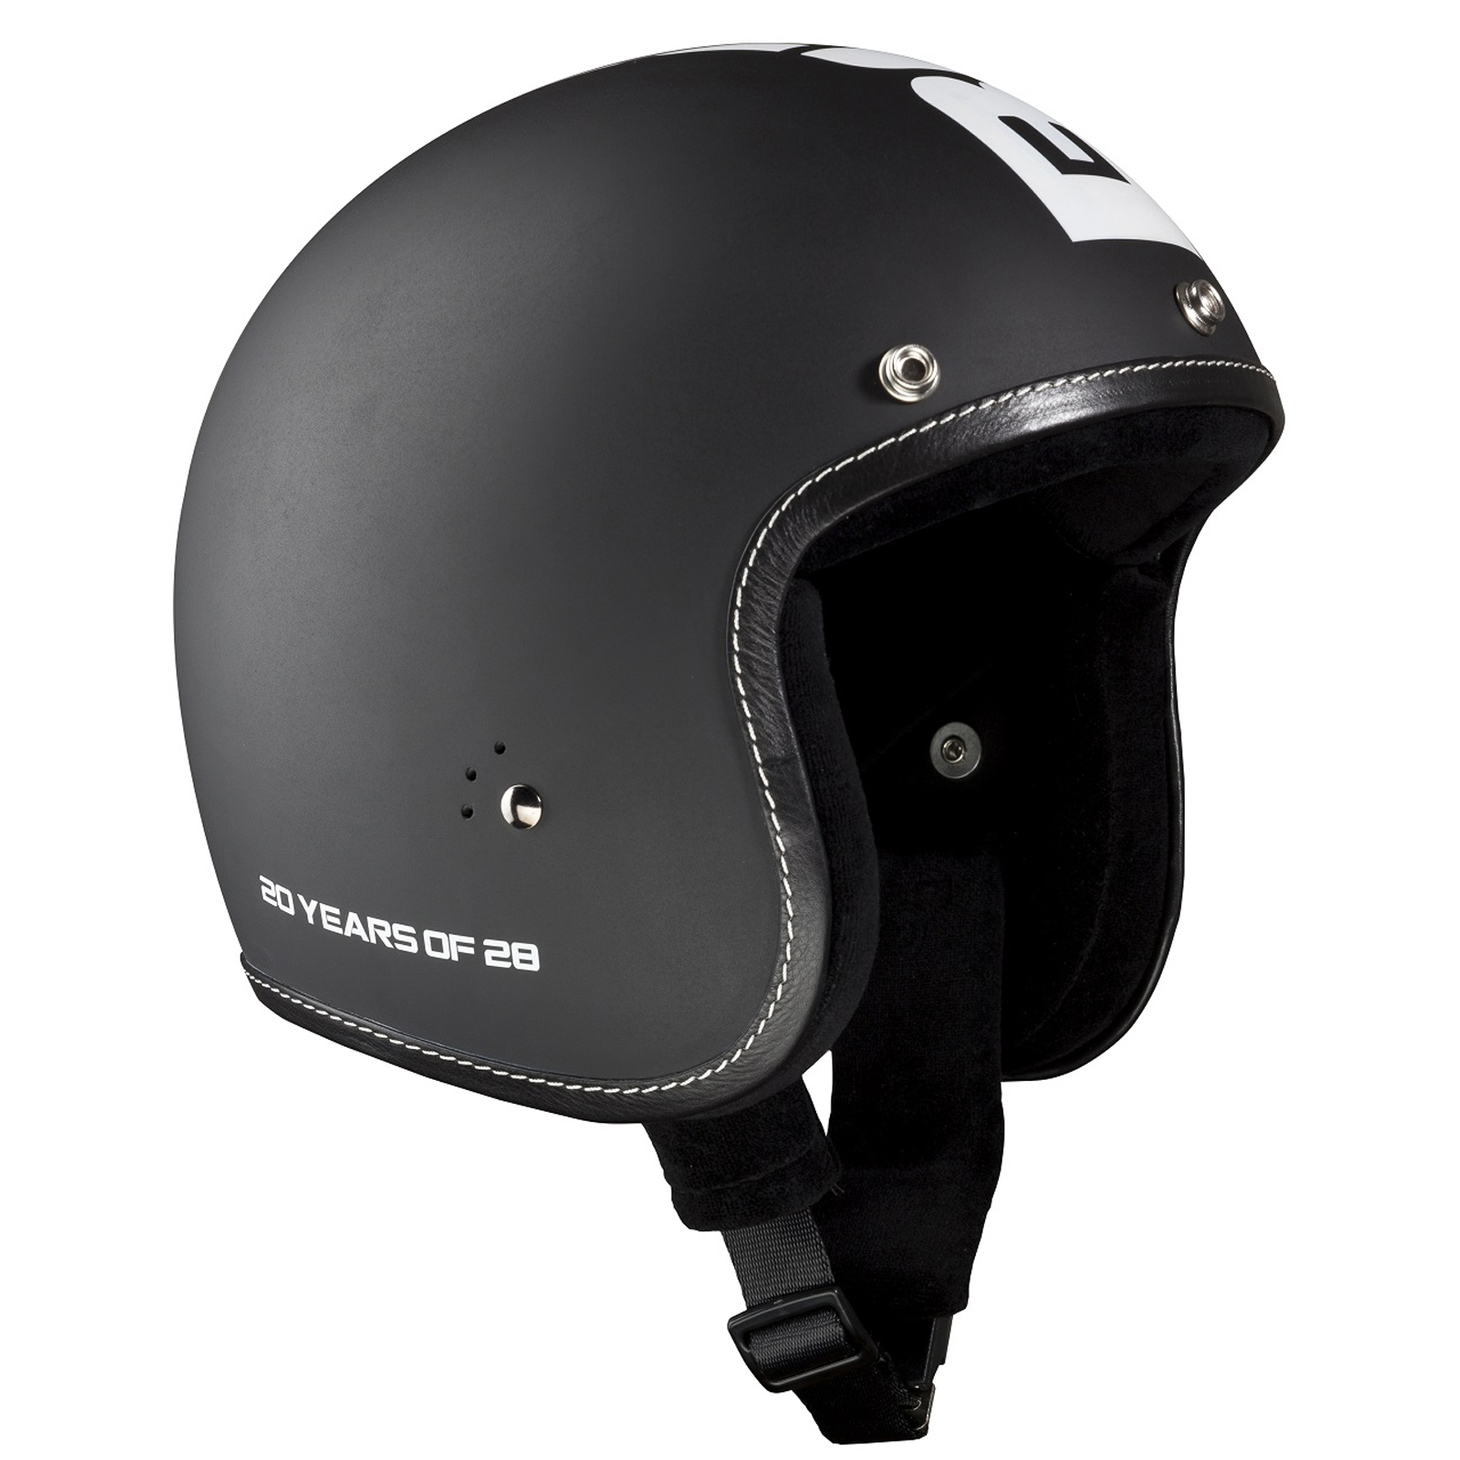 Bandit 20 Years Anniversary open face helmet – Picture 3